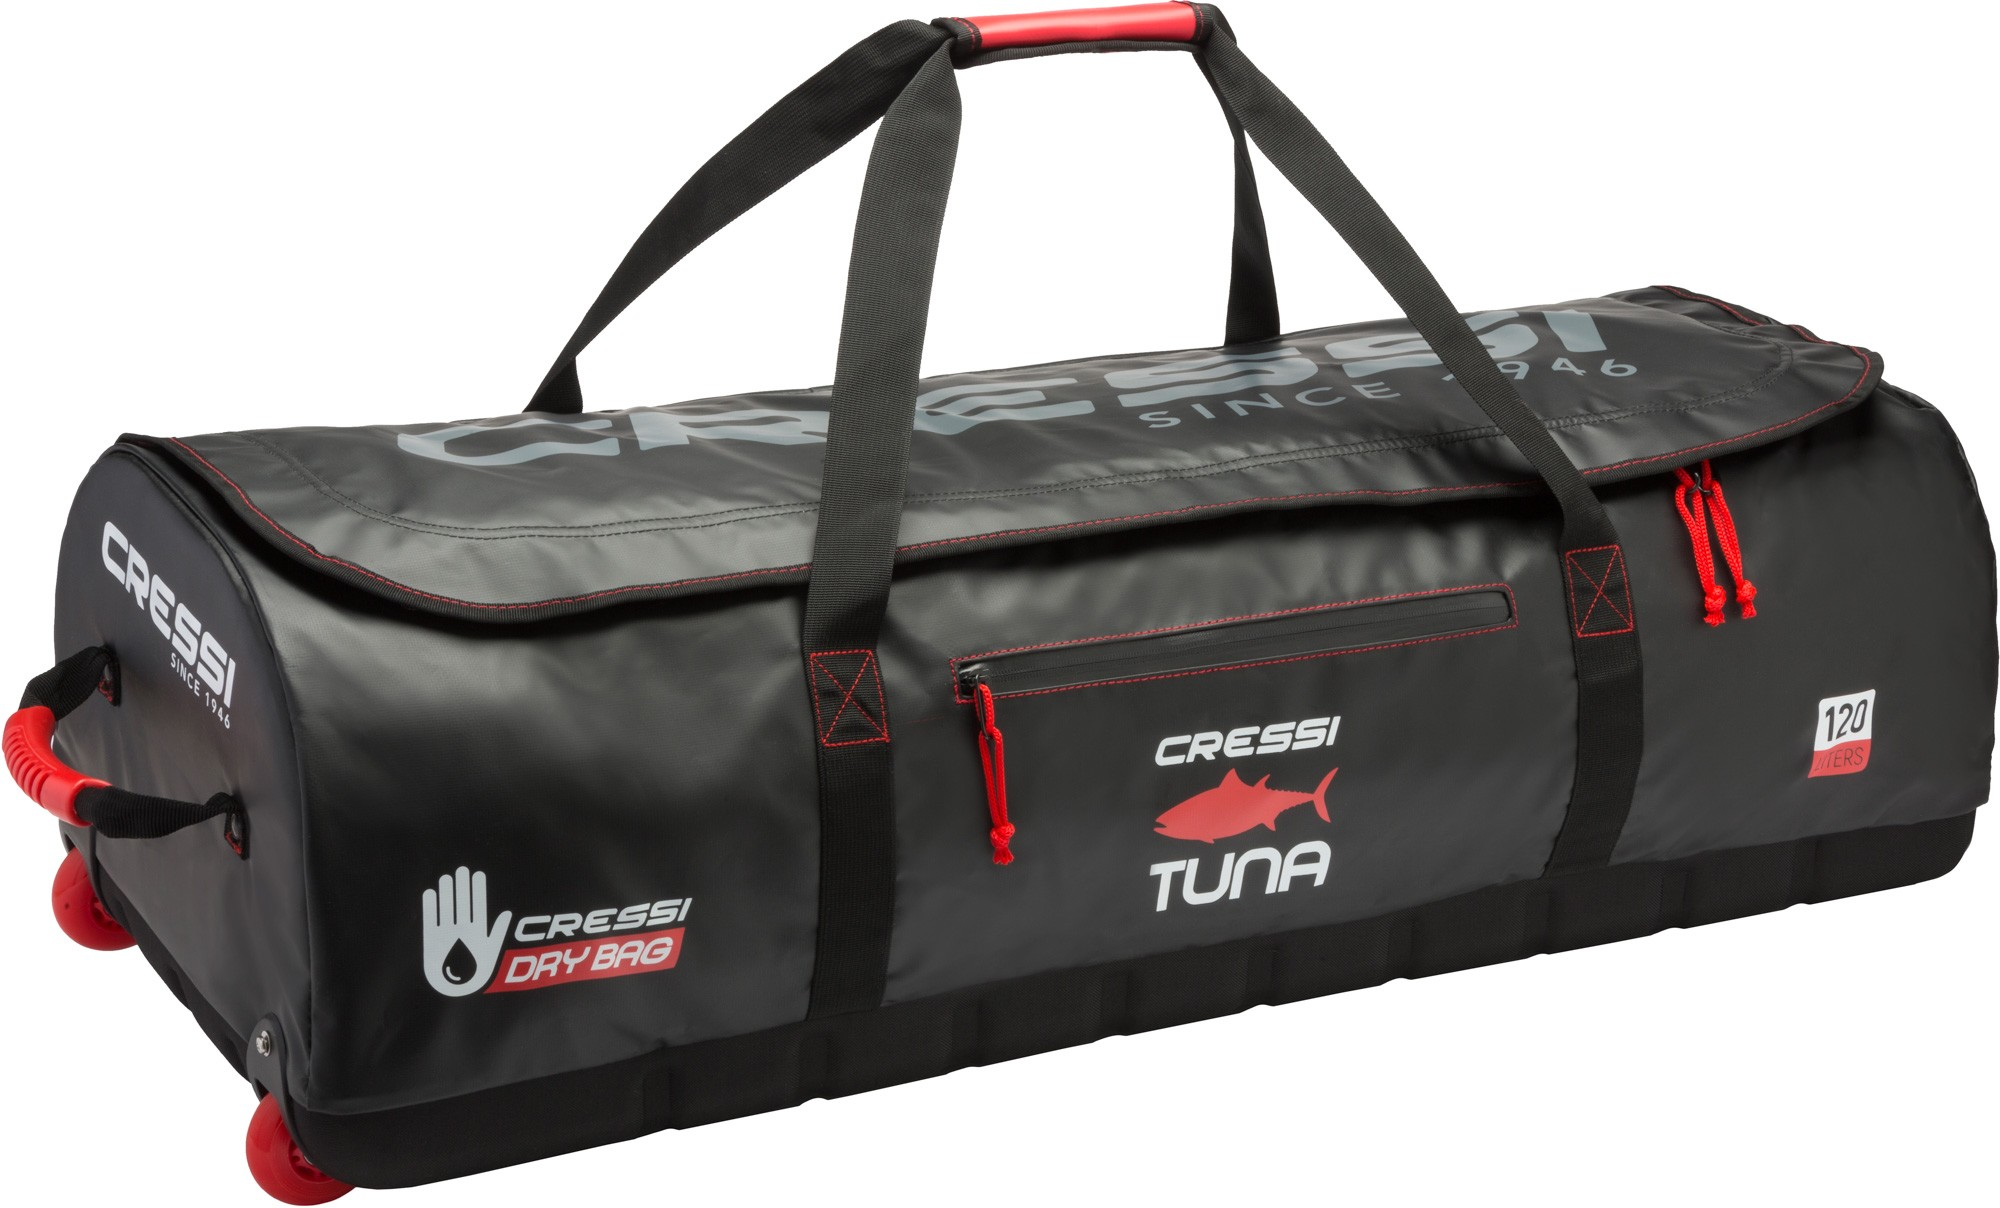 TUNA with wheels oversized bag